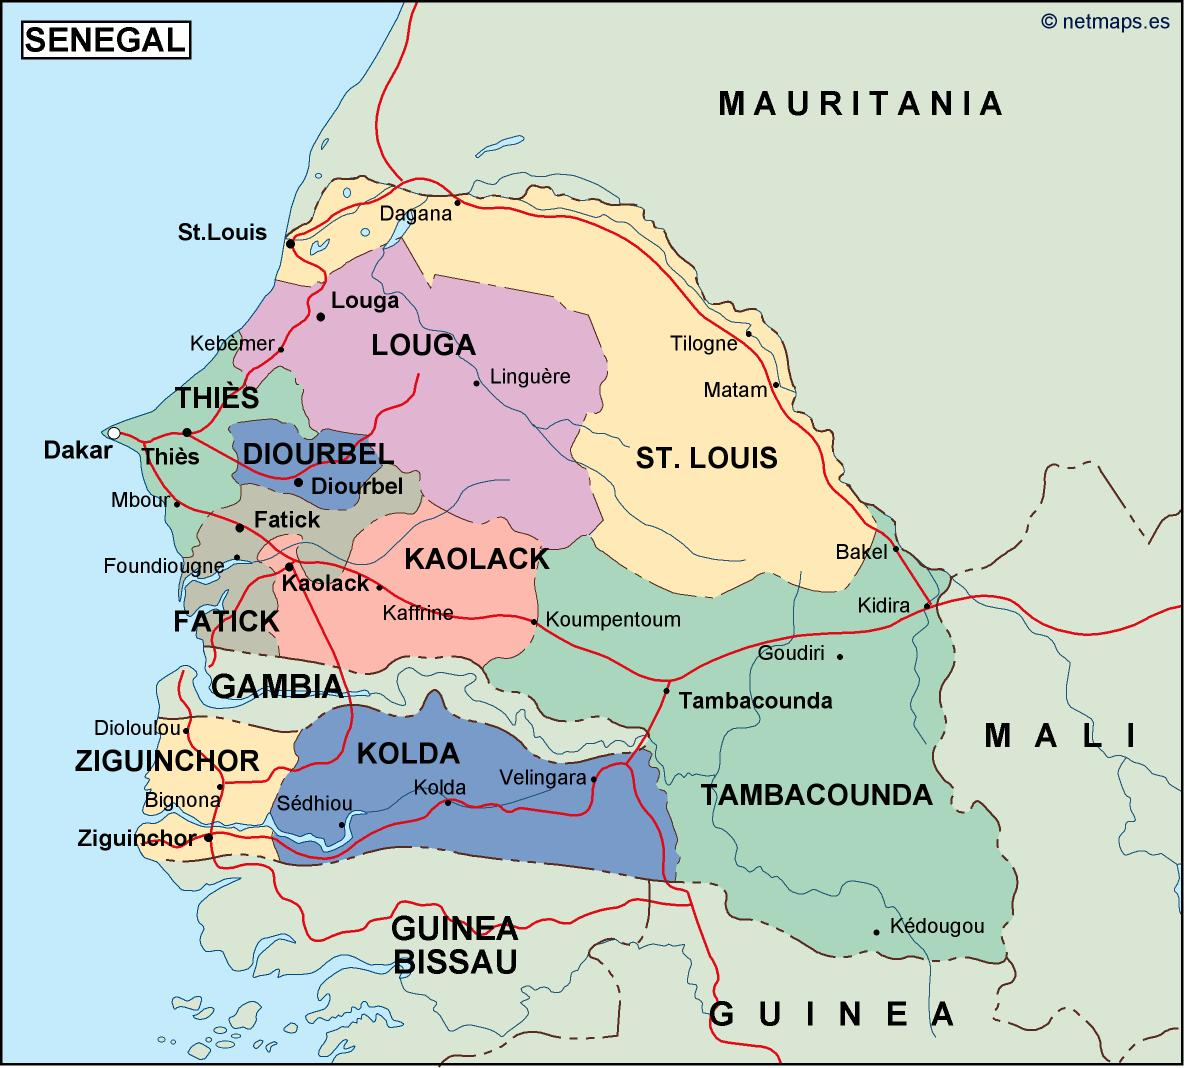 Senegal On Africa Map.Senegal Political Map Vector Eps Maps Order And Download Senegal